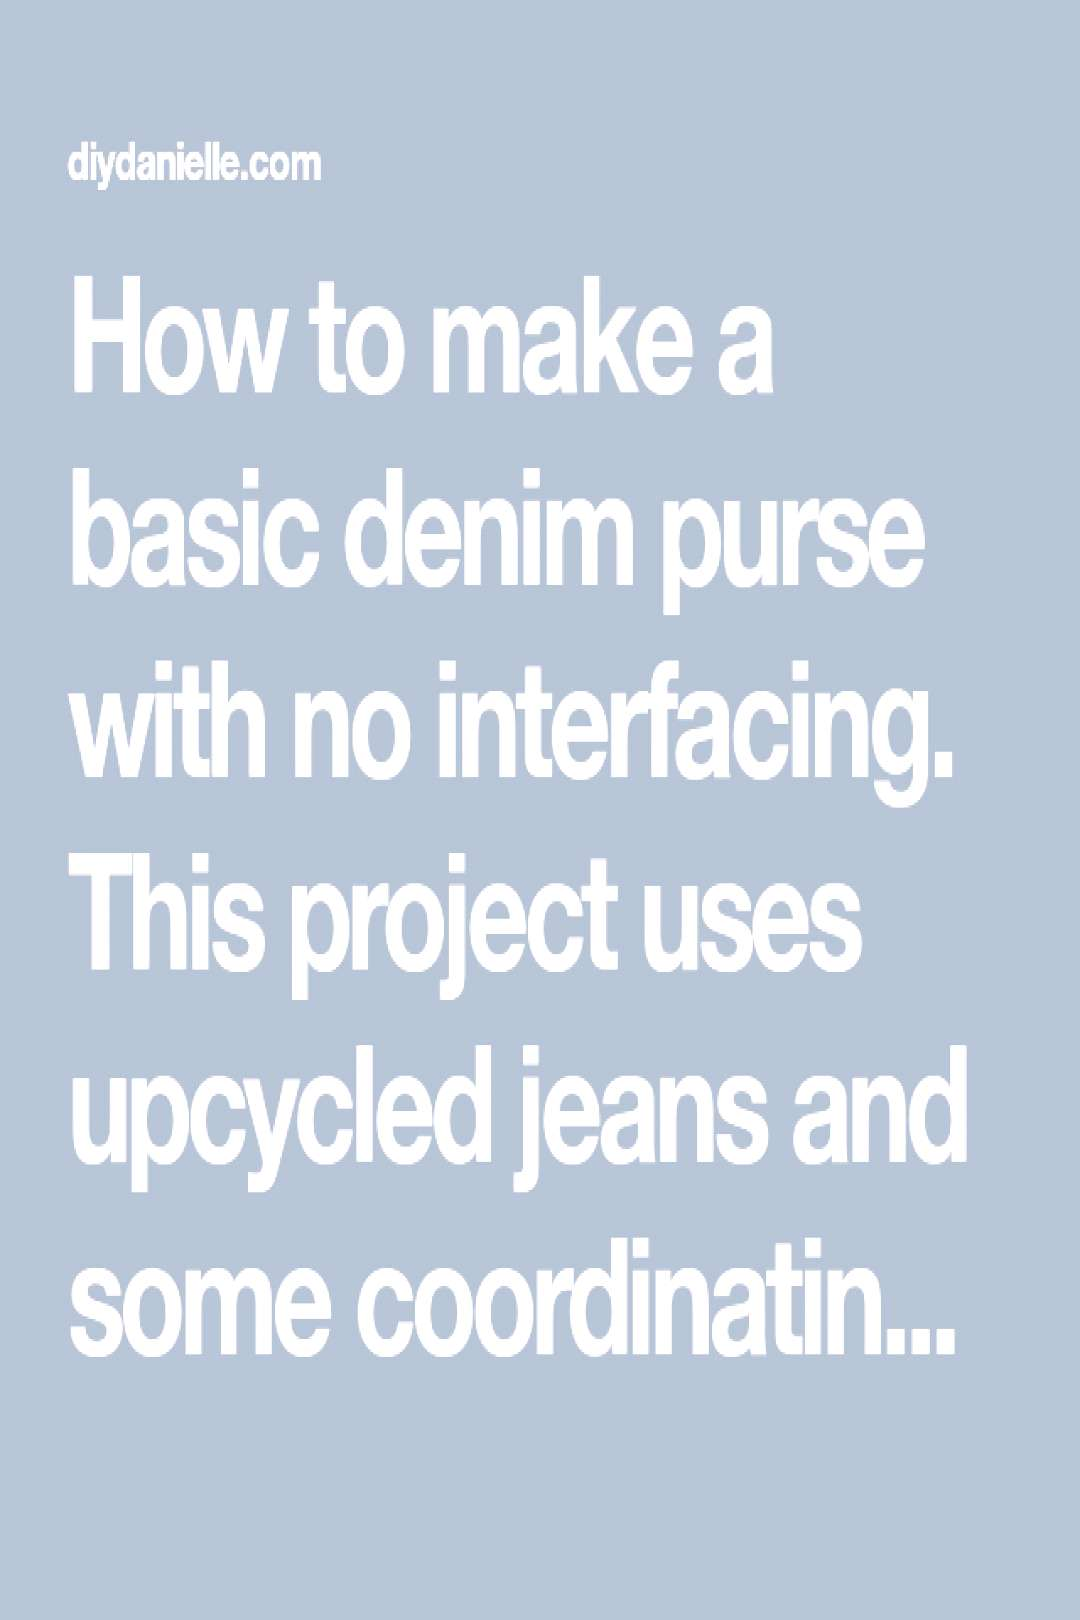 How to make a basic denim purse with no interfacing. This project uses upcycled jeans and some coor